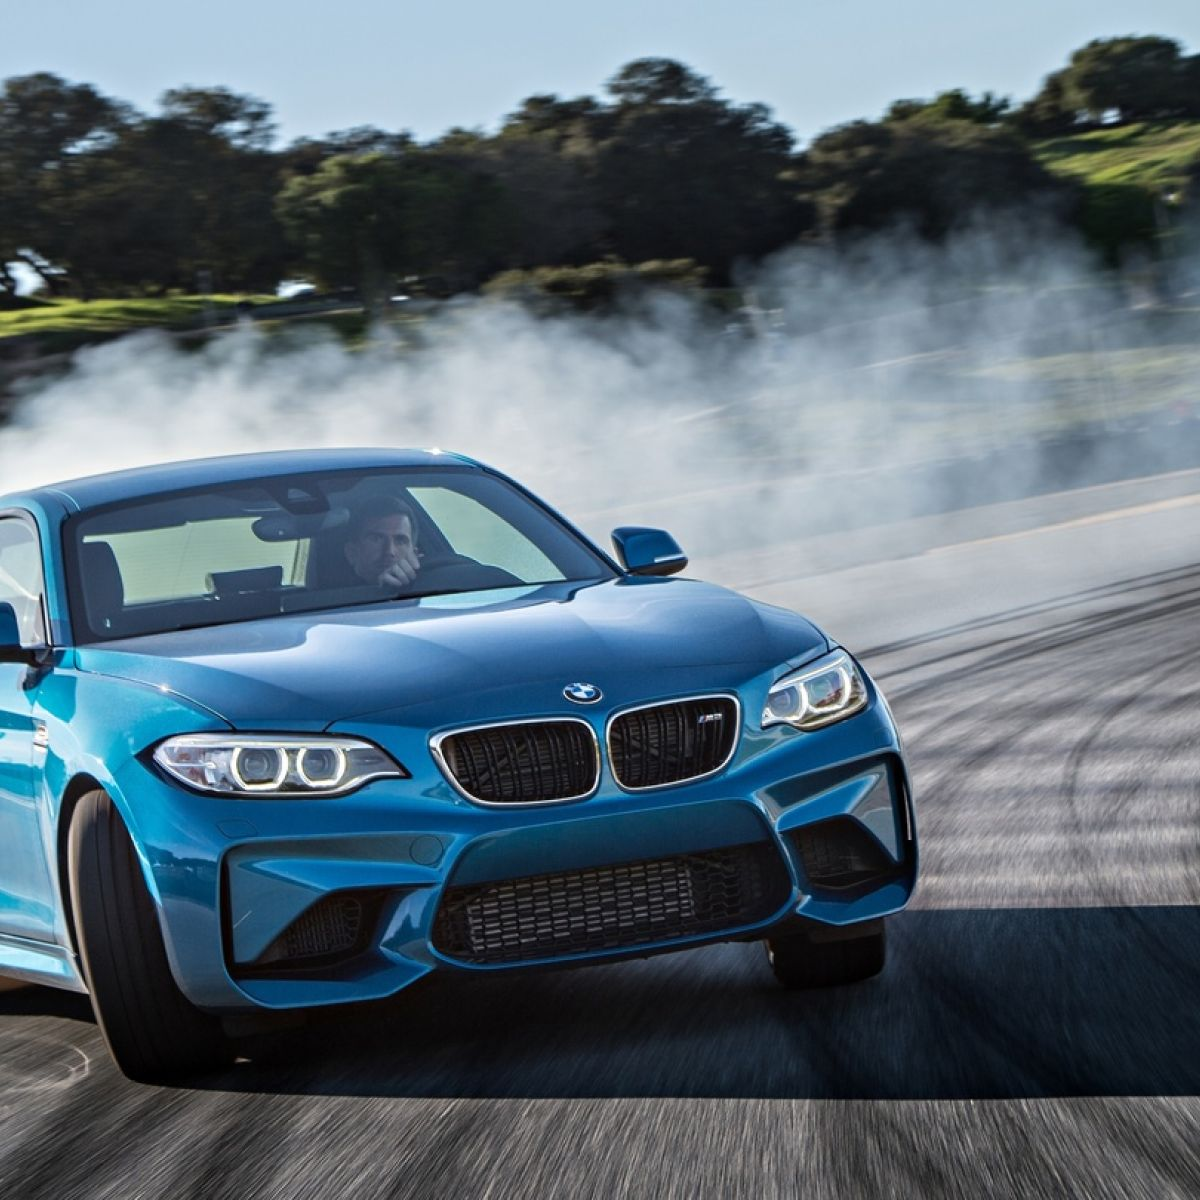 First Drive Bmws M2 Is Fast And Furious But Maybe Not The Full M Jaguar Power Sports Wiring Diagram Package